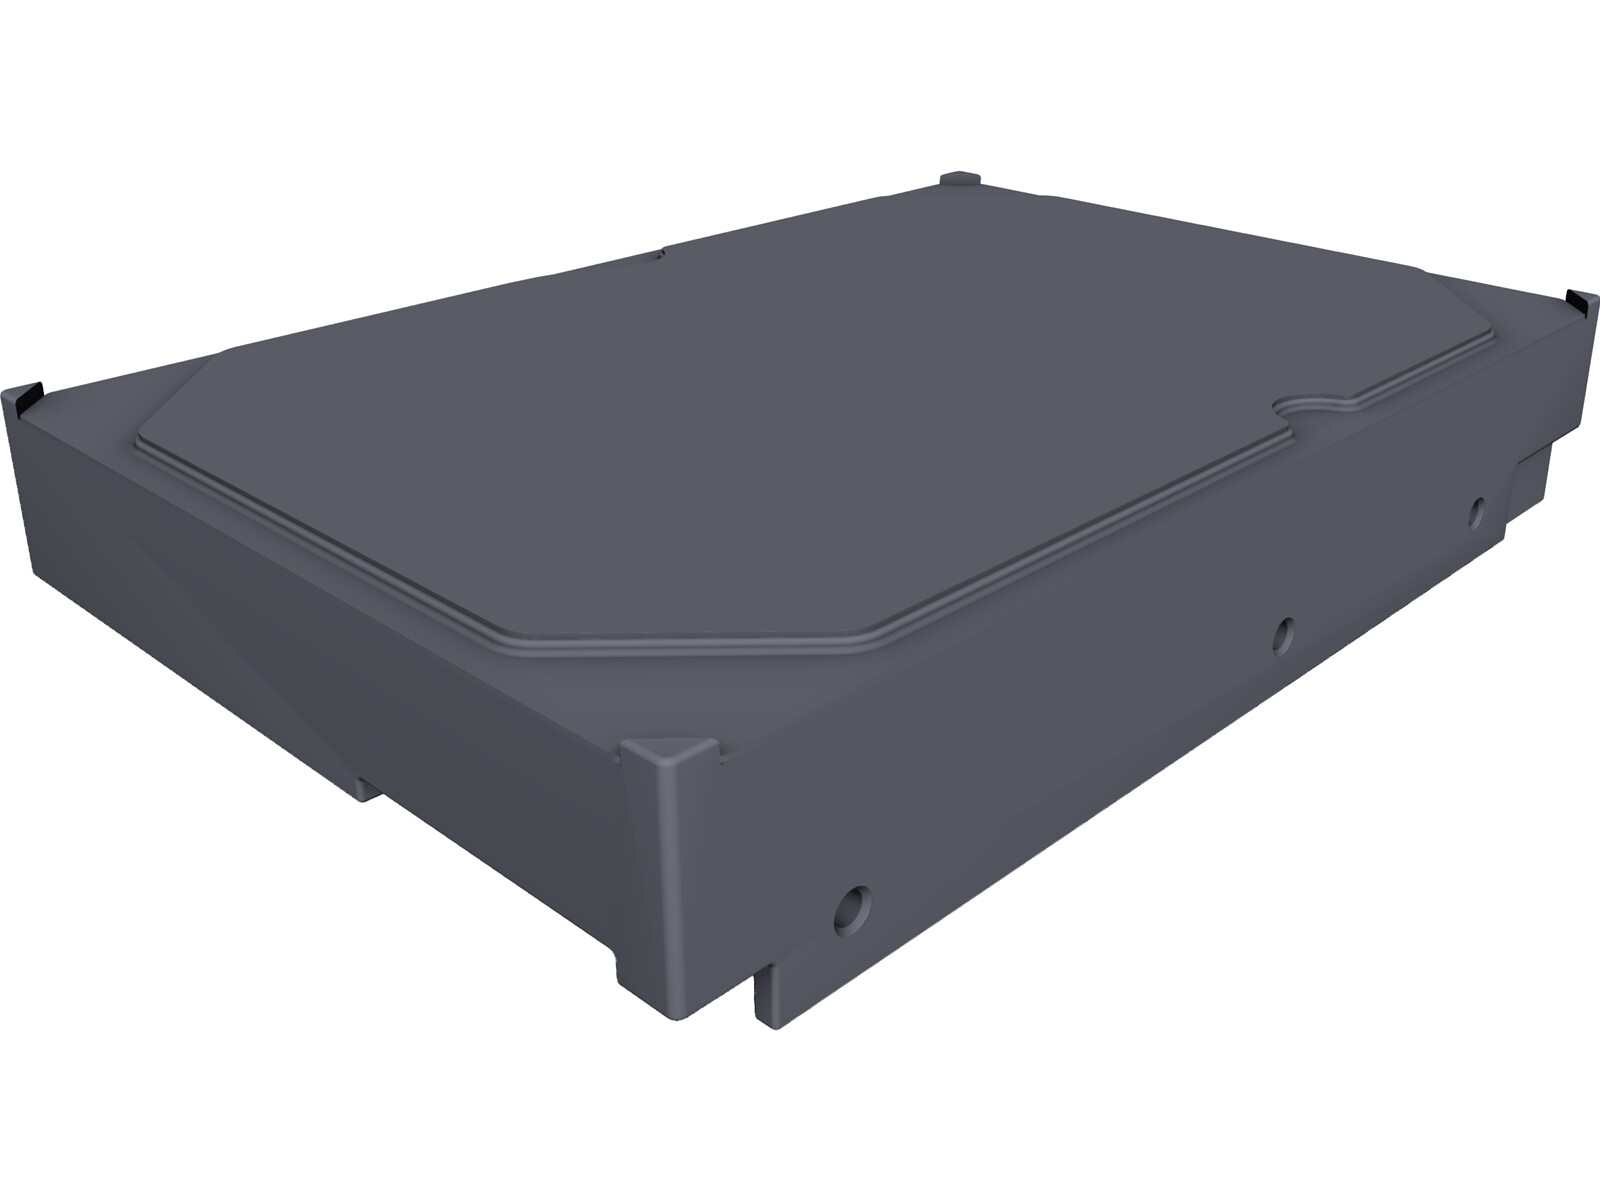 Seagate HDD 3D CAD Model